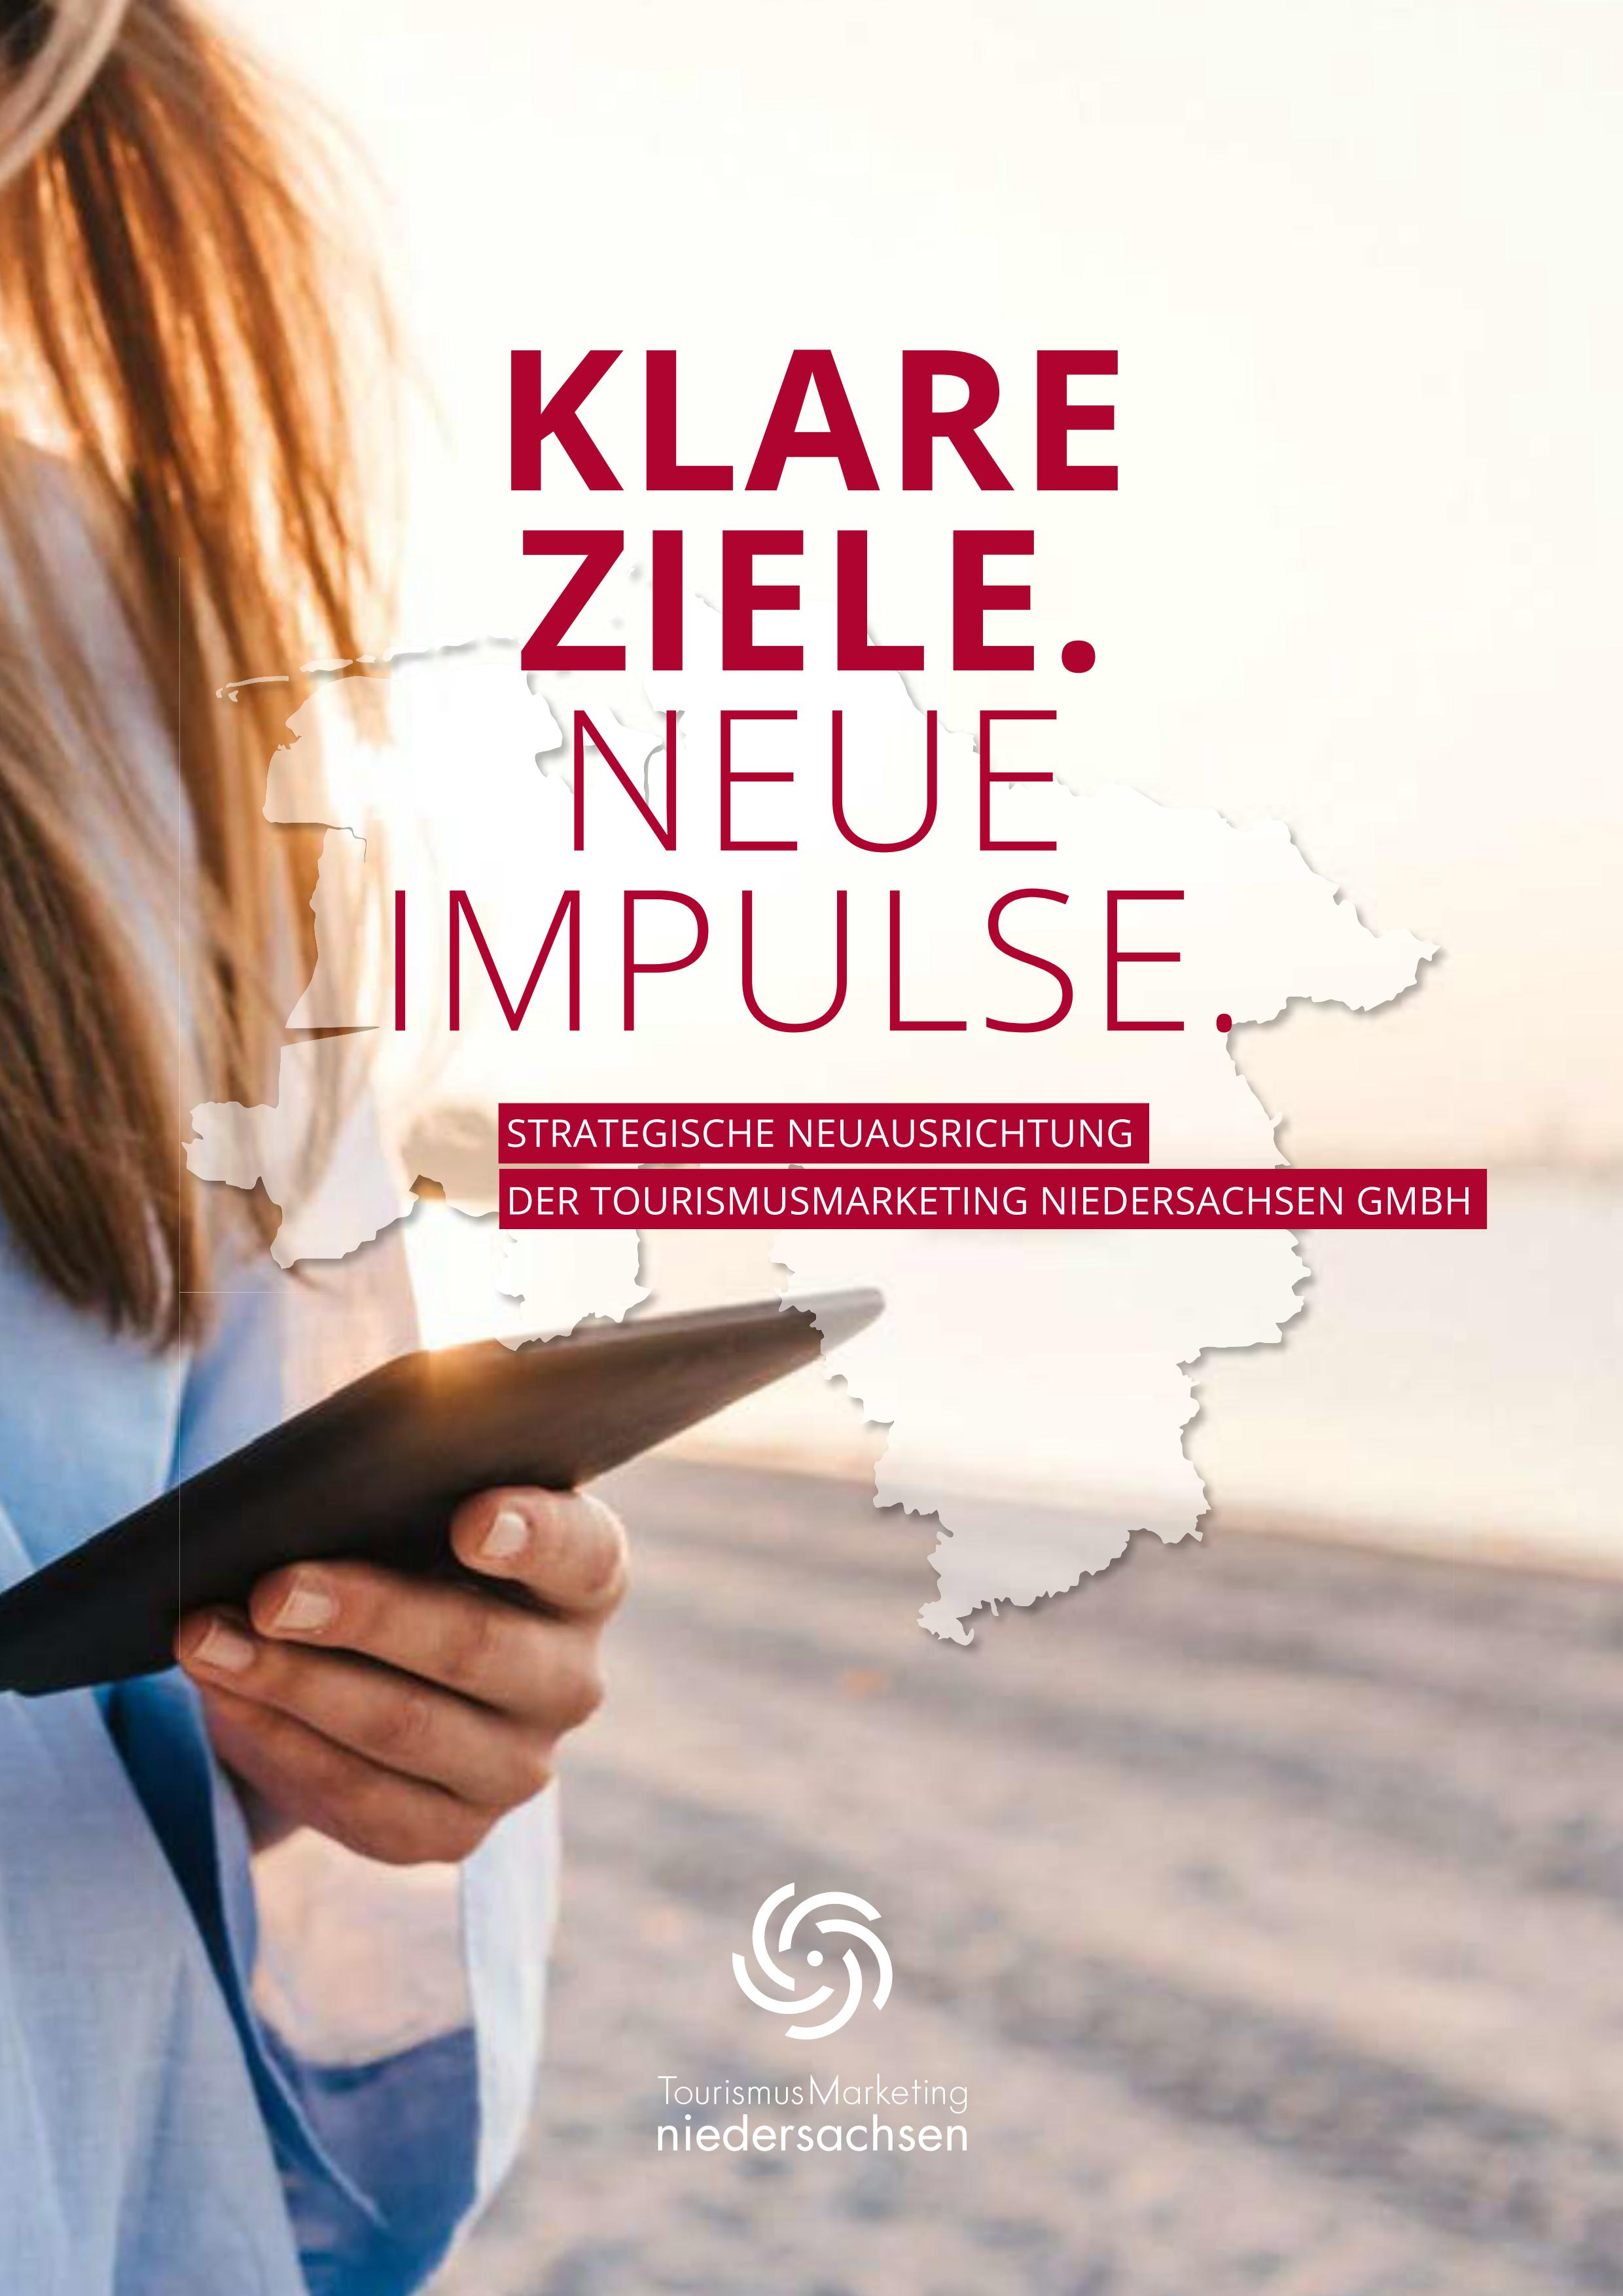 Download Strategiepapier TourismusMarketing Niedersachsen GmbH